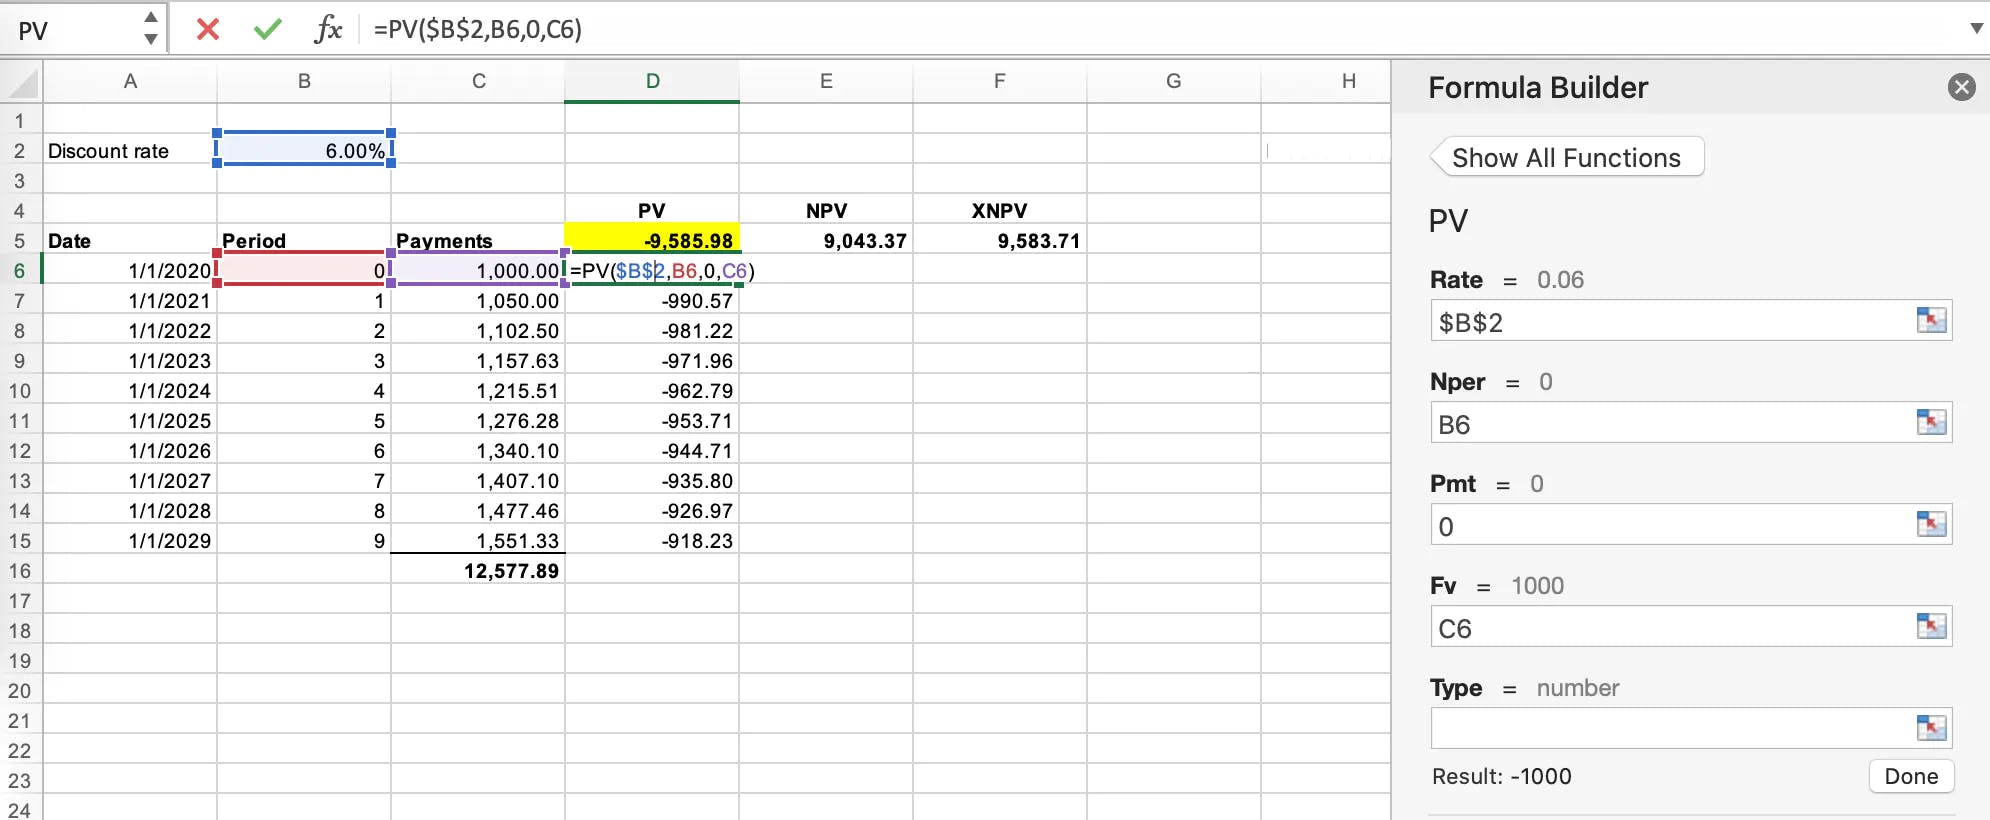 Application of the present value formula in Microsoft Excel